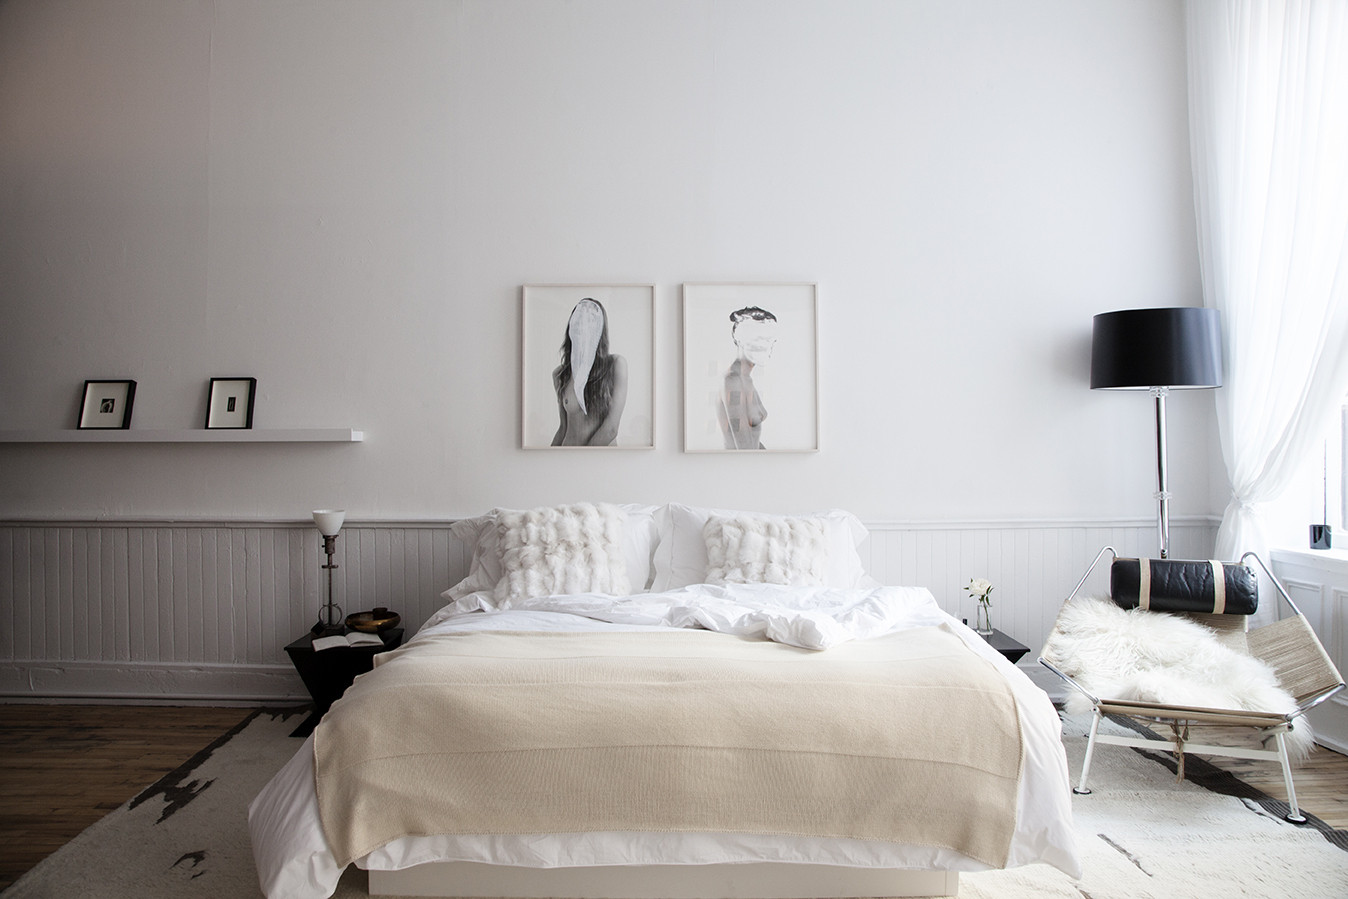 white bedroom interior with fur pillows